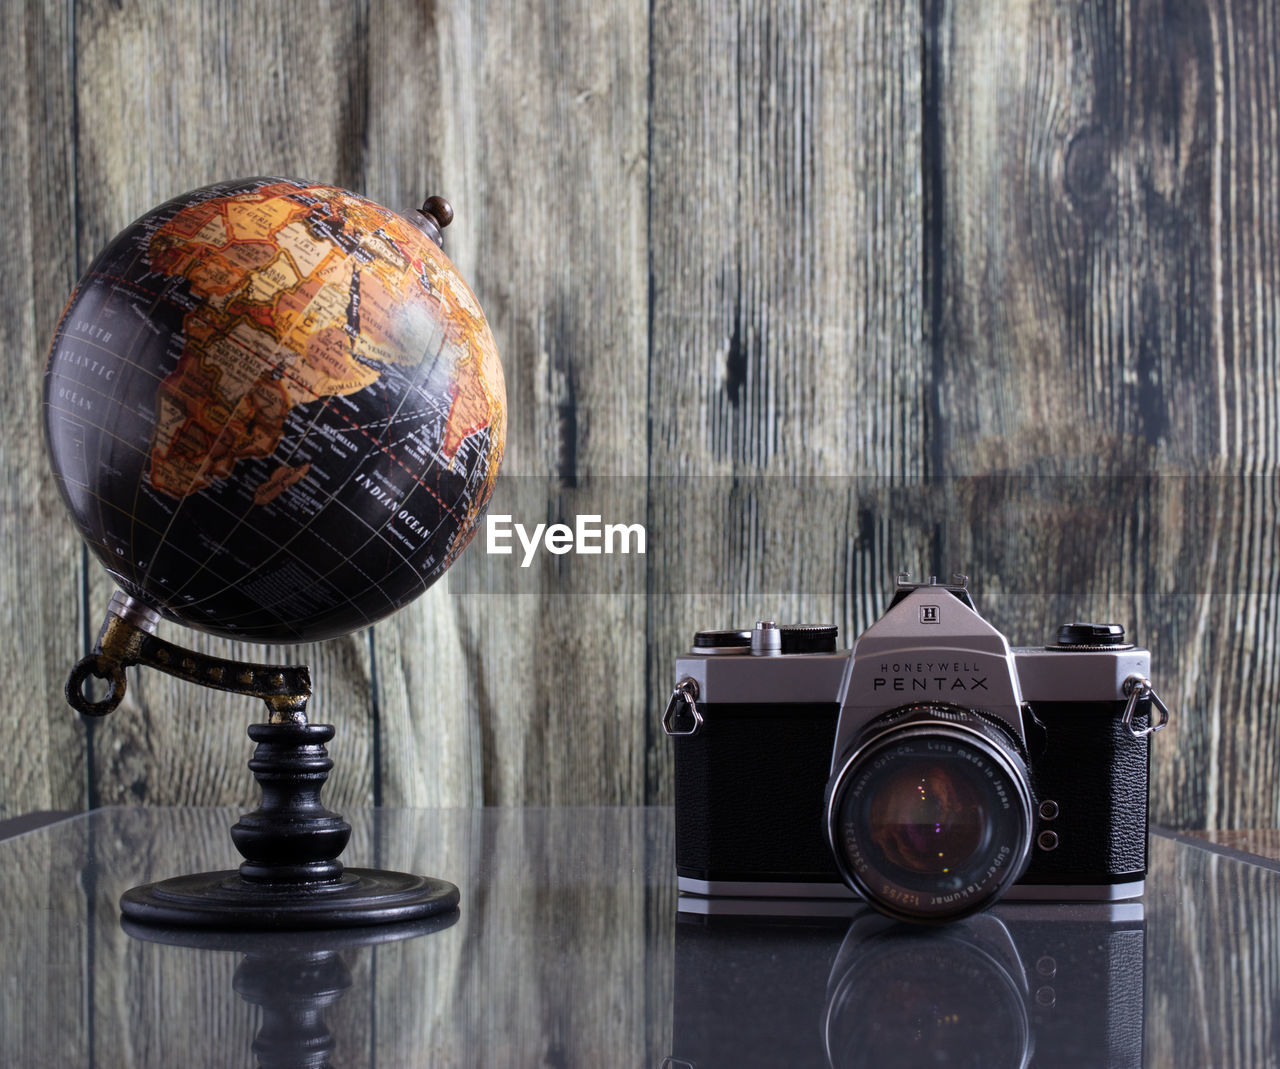 photography themes, wood - material, still life, camera - photographic equipment, table, retro styled, technology, indoors, no people, antique, photographic equipment, close-up, old, wall - building feature, globe - man made object, vintage, equipment, photographing, analog